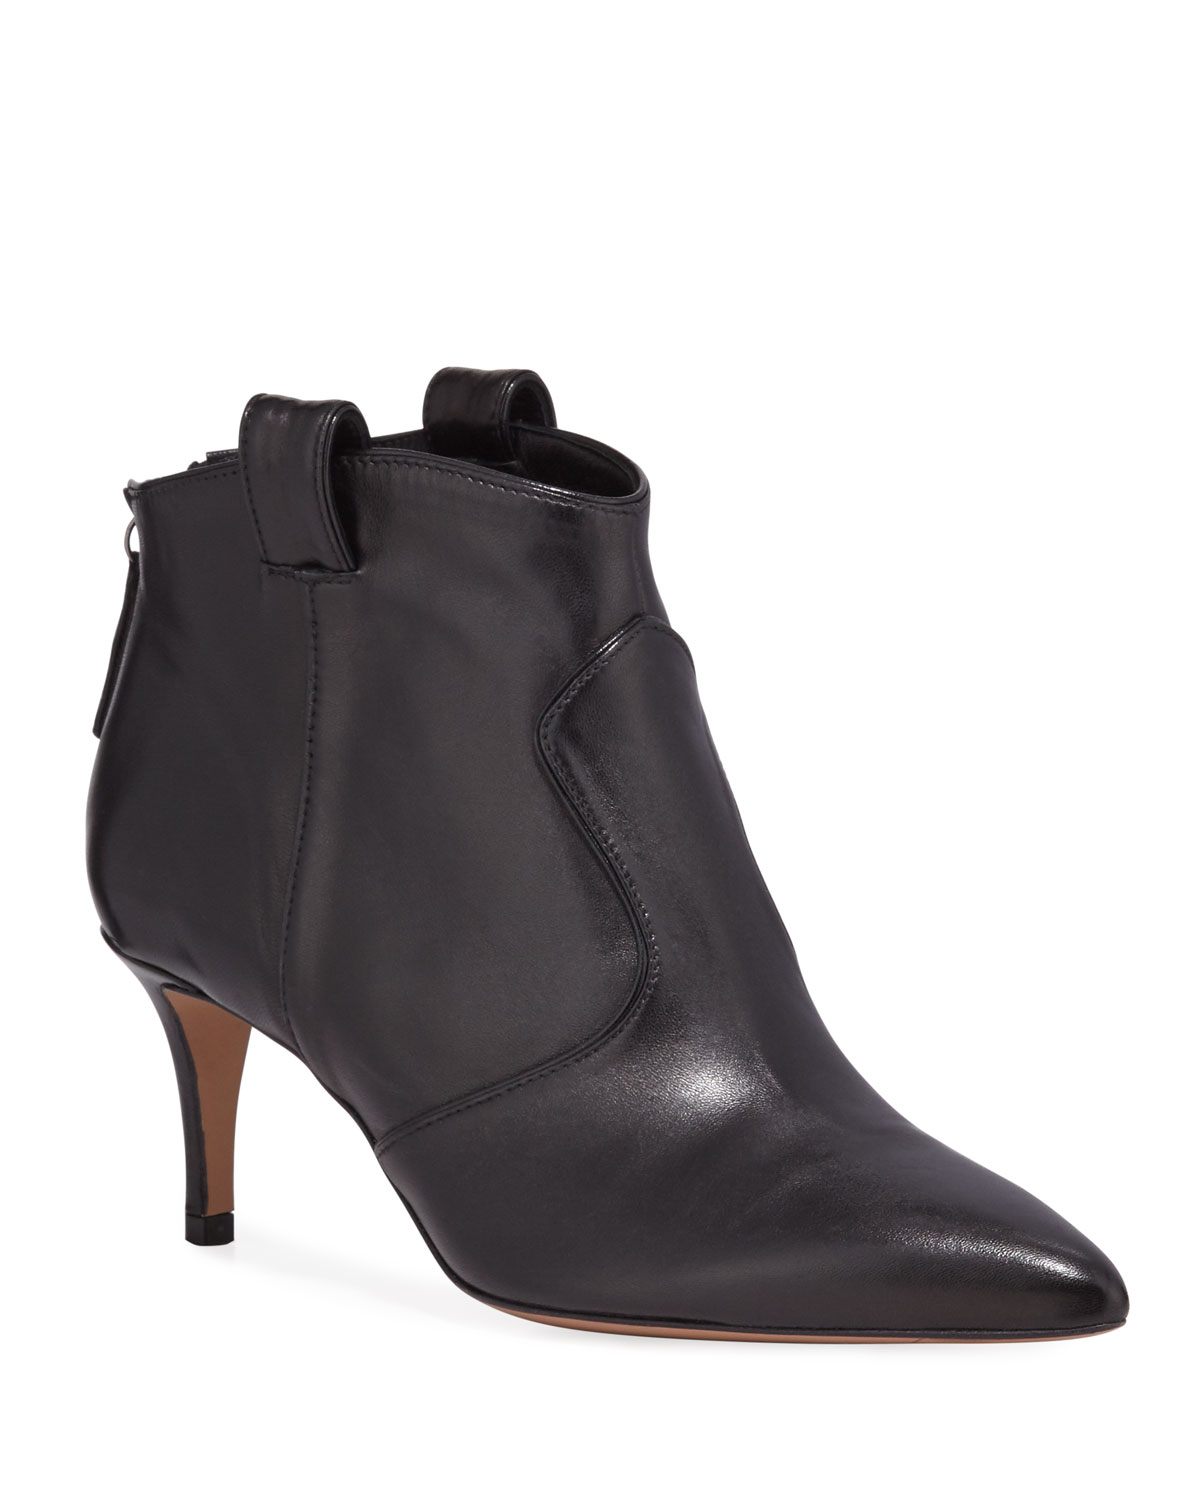 Lexi Leather Zip Booties